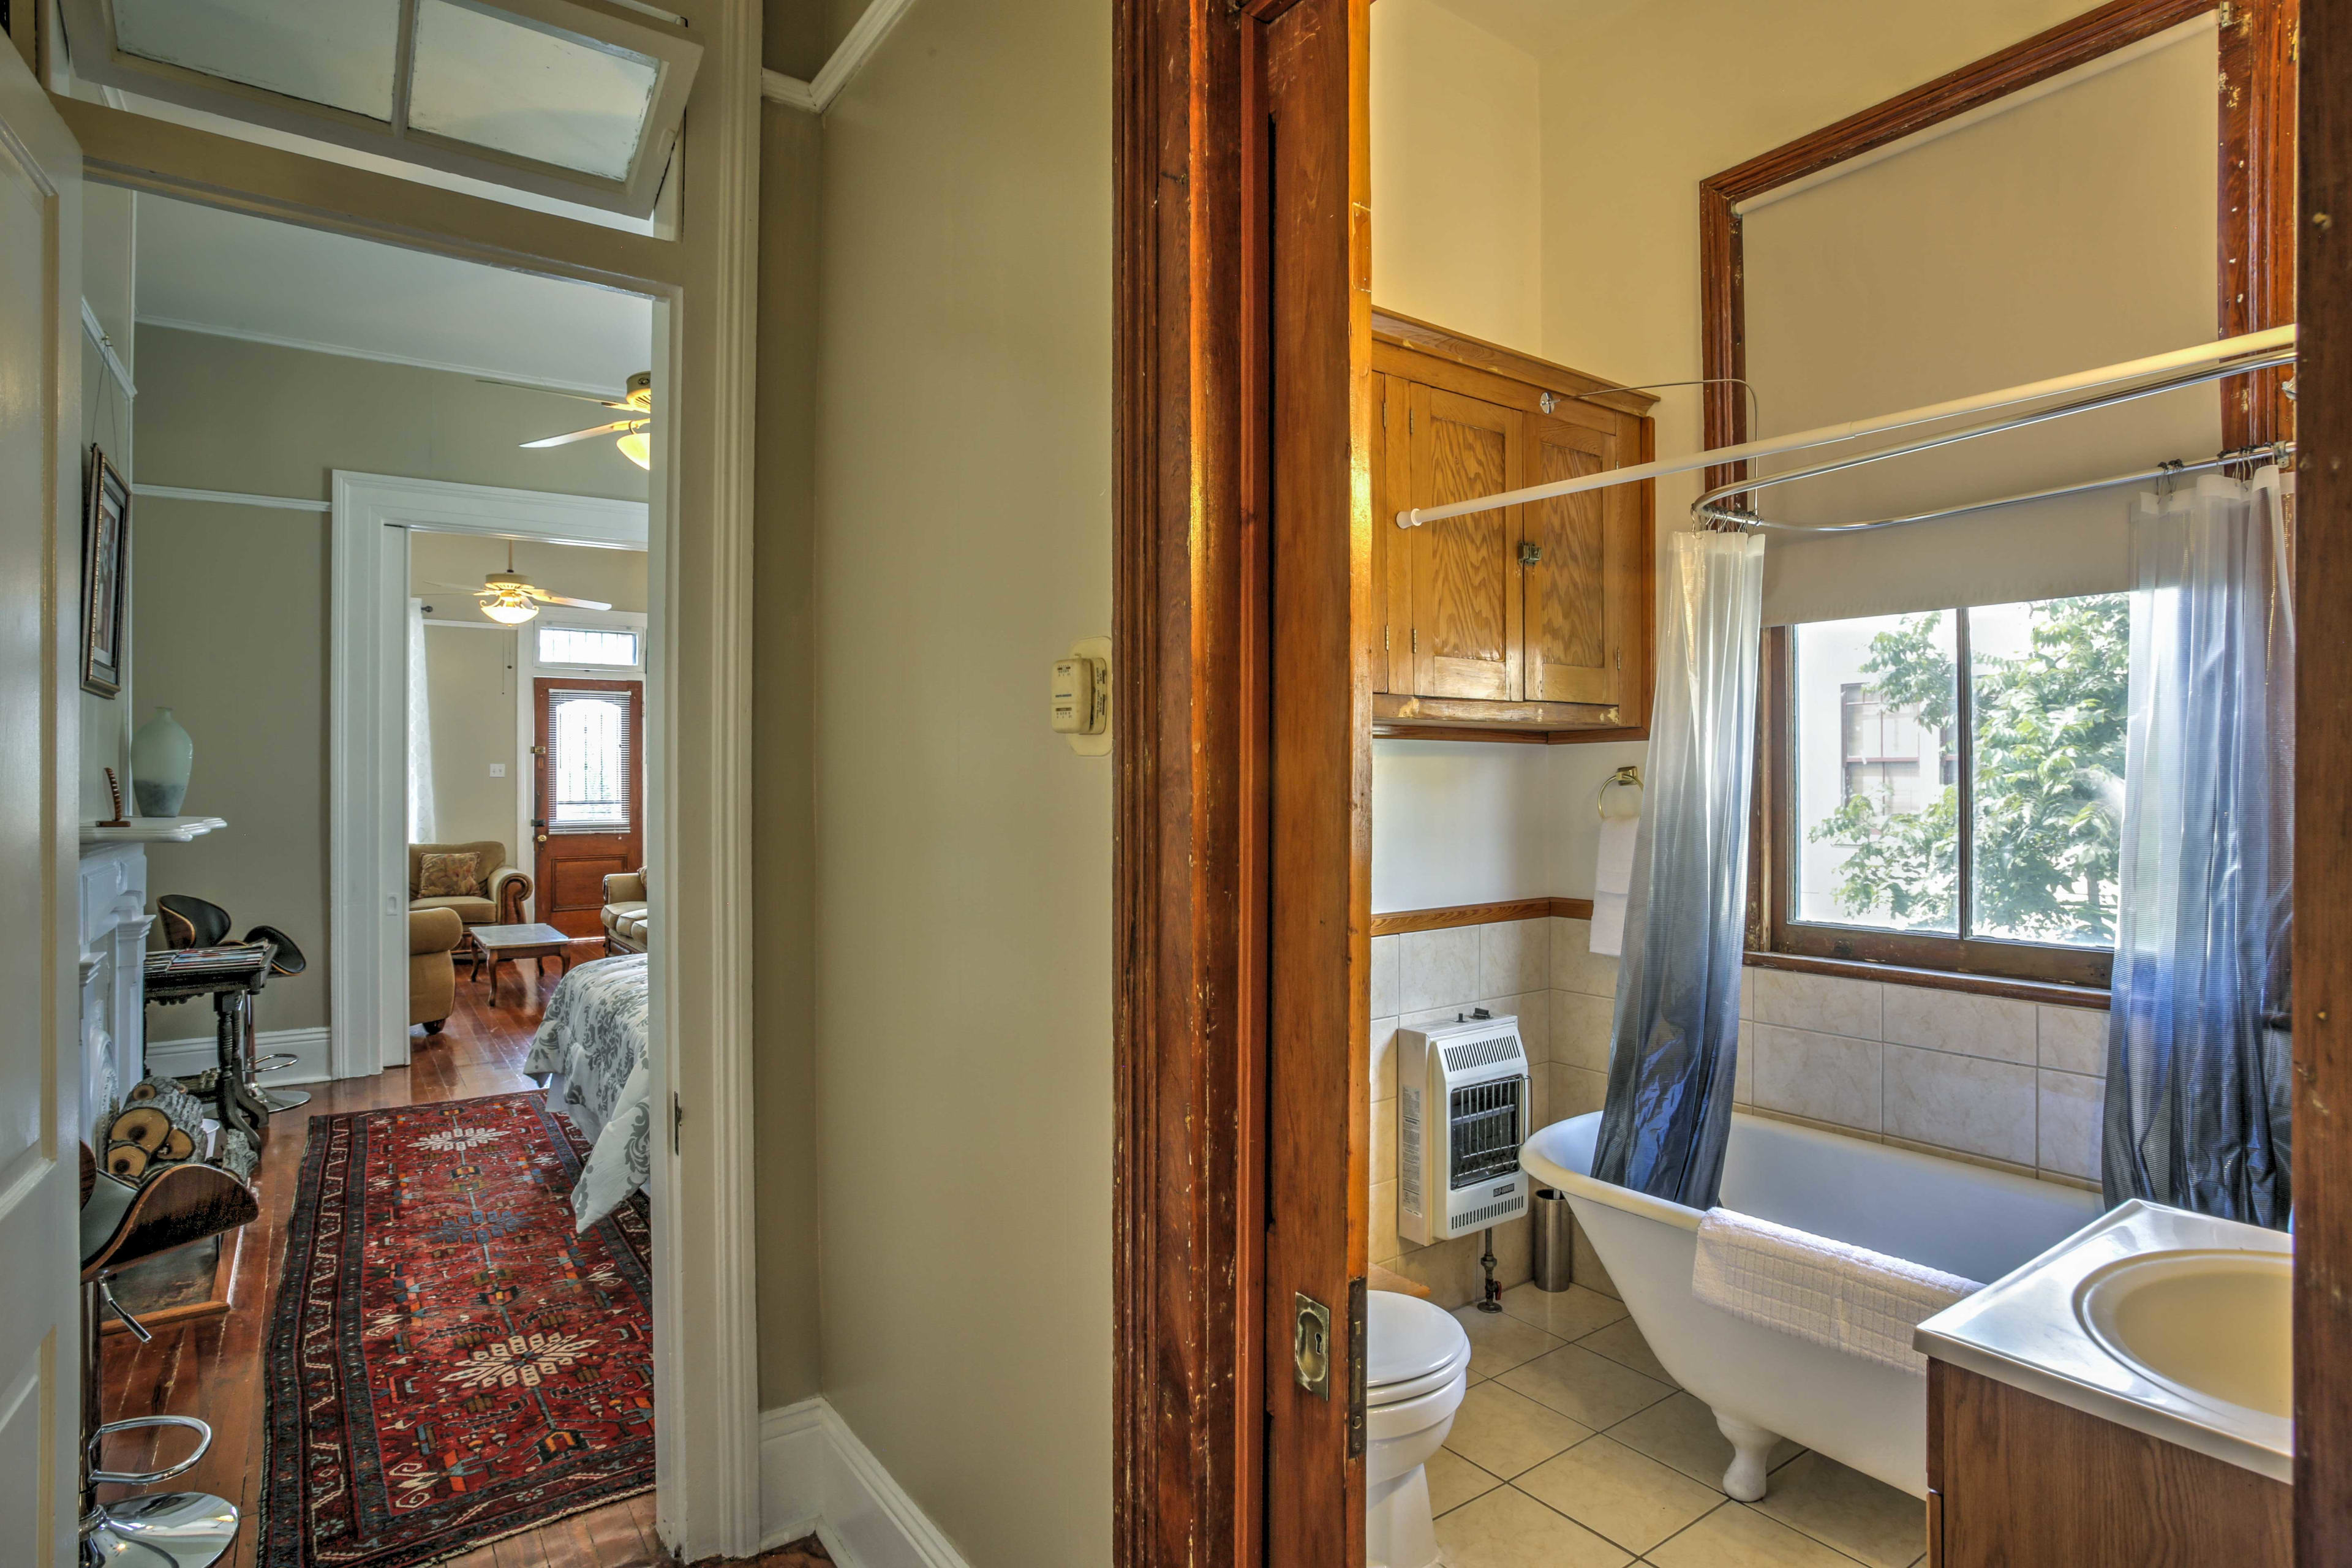 The bathroom is located in between the first and second bedrooms.